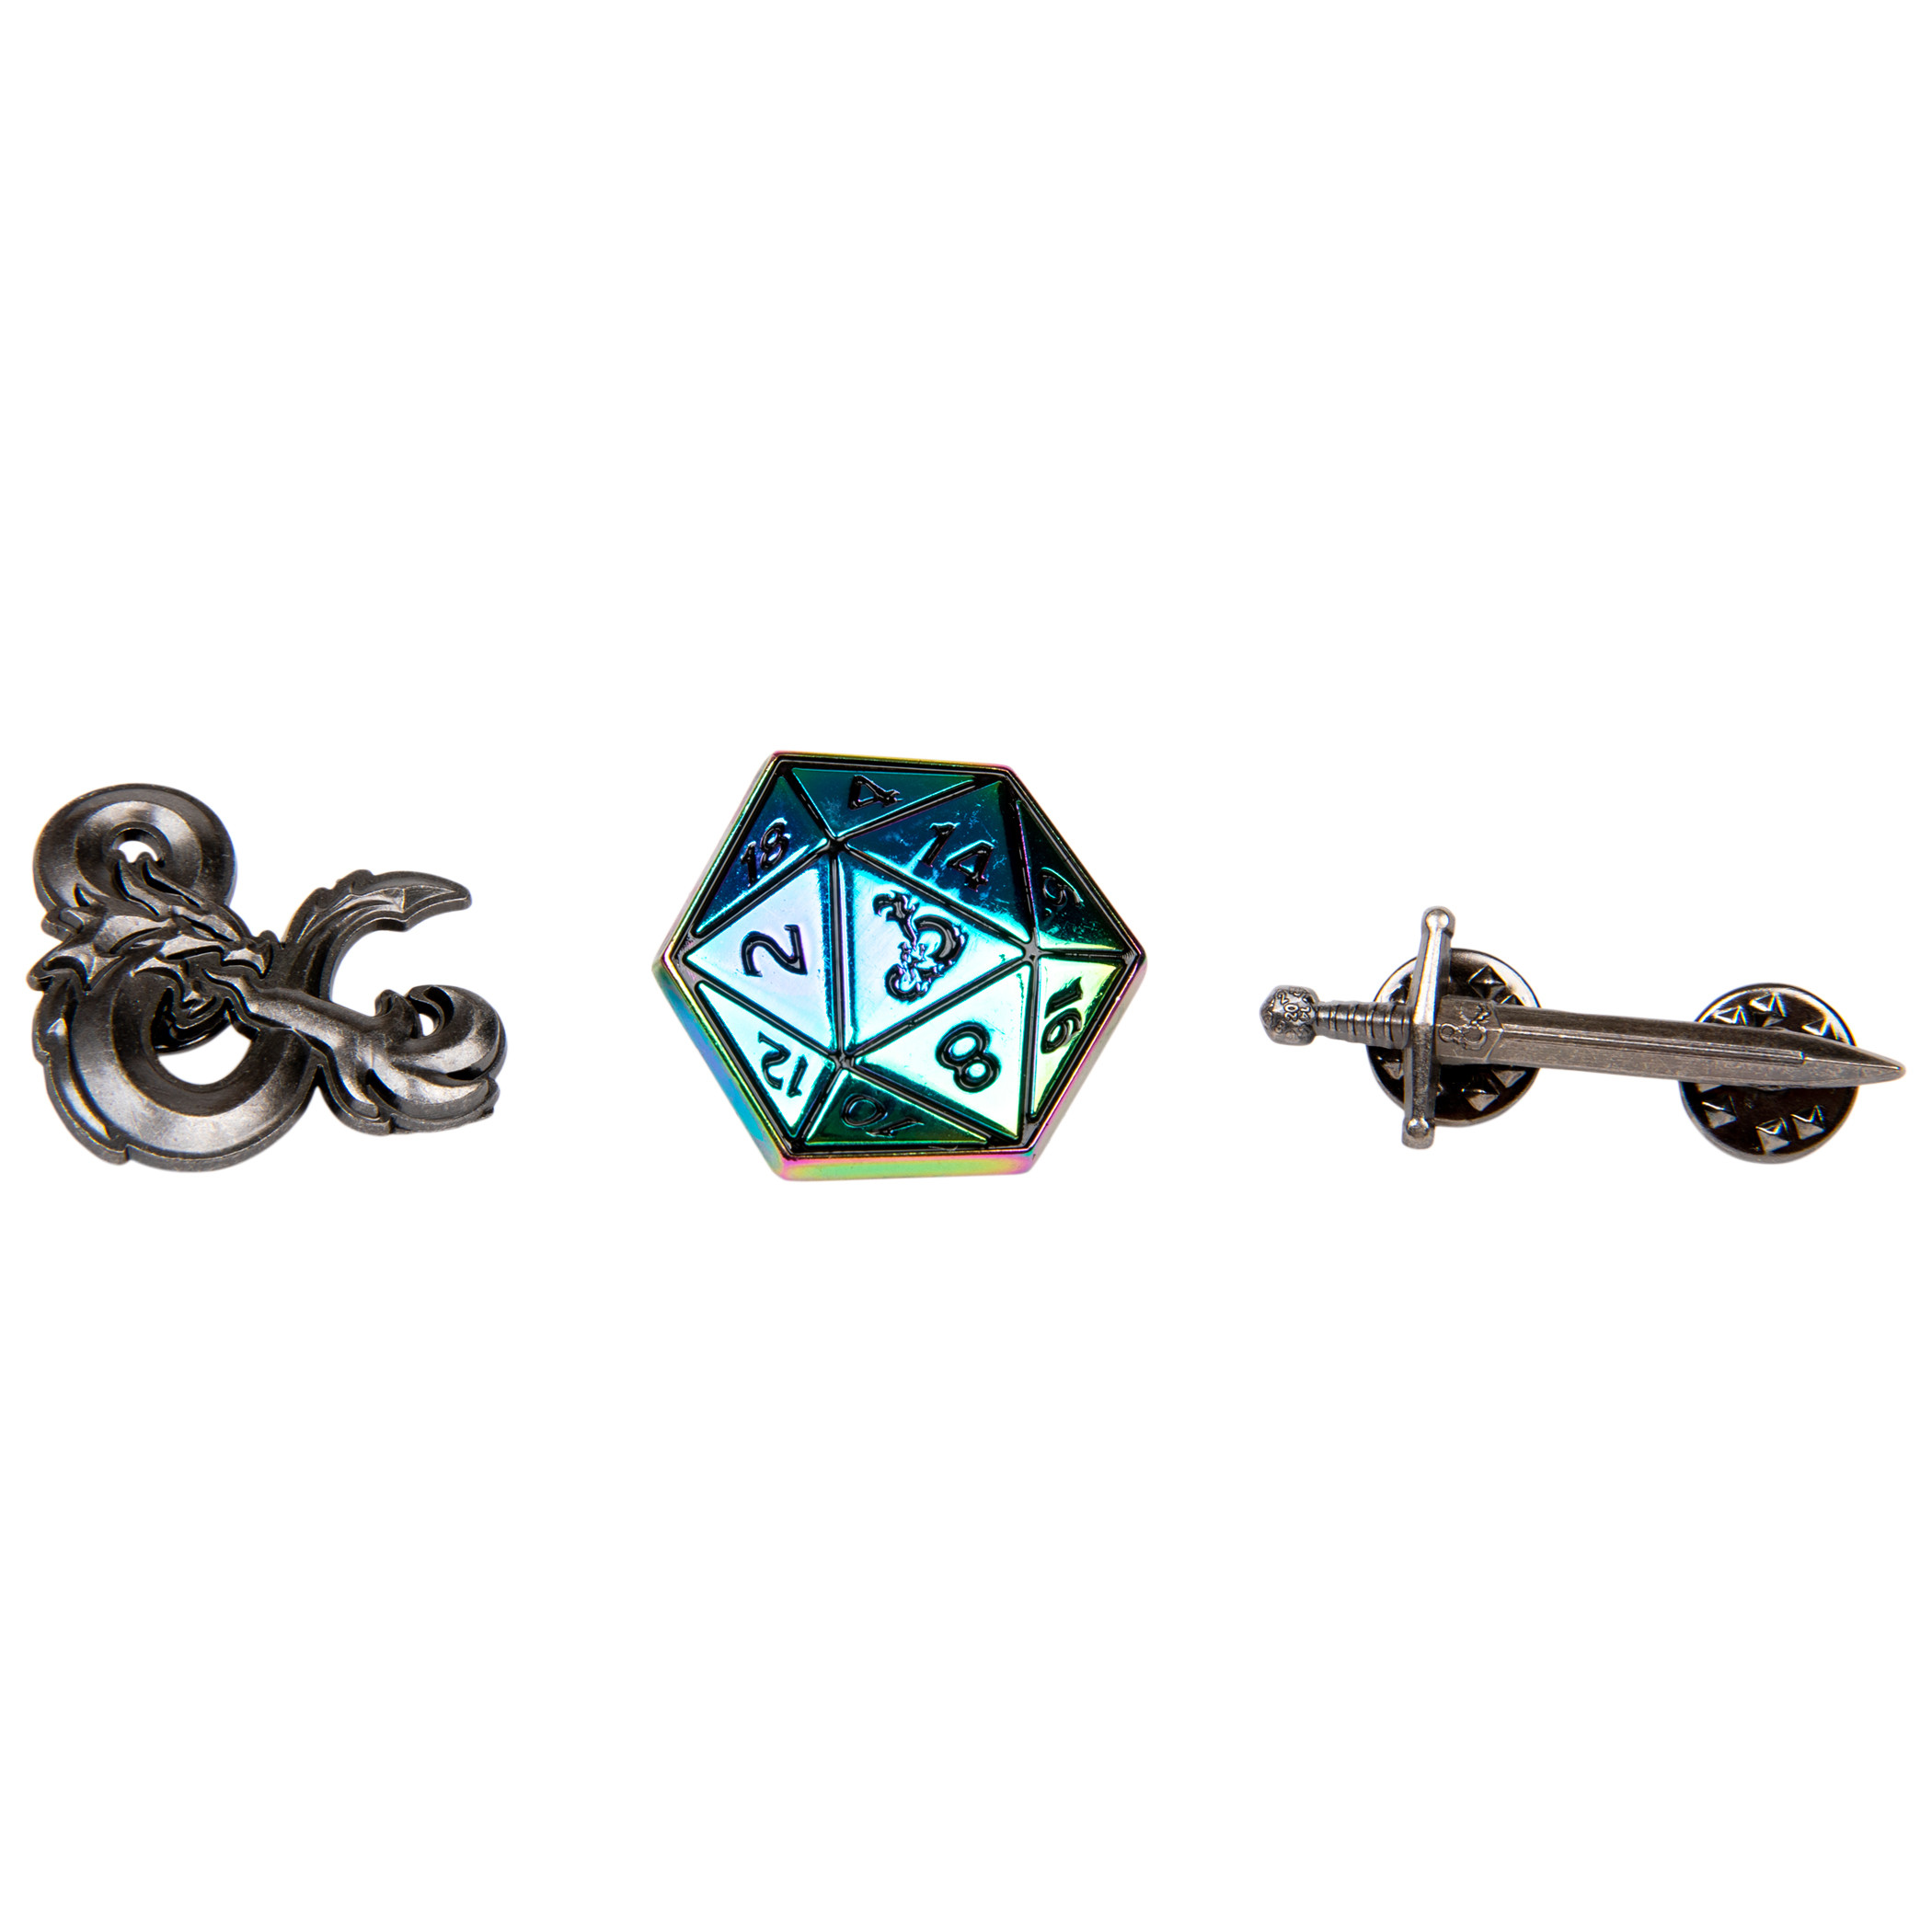 Dungeons & Dragons Logo D20 Sword Set of 3 Lapel Pins